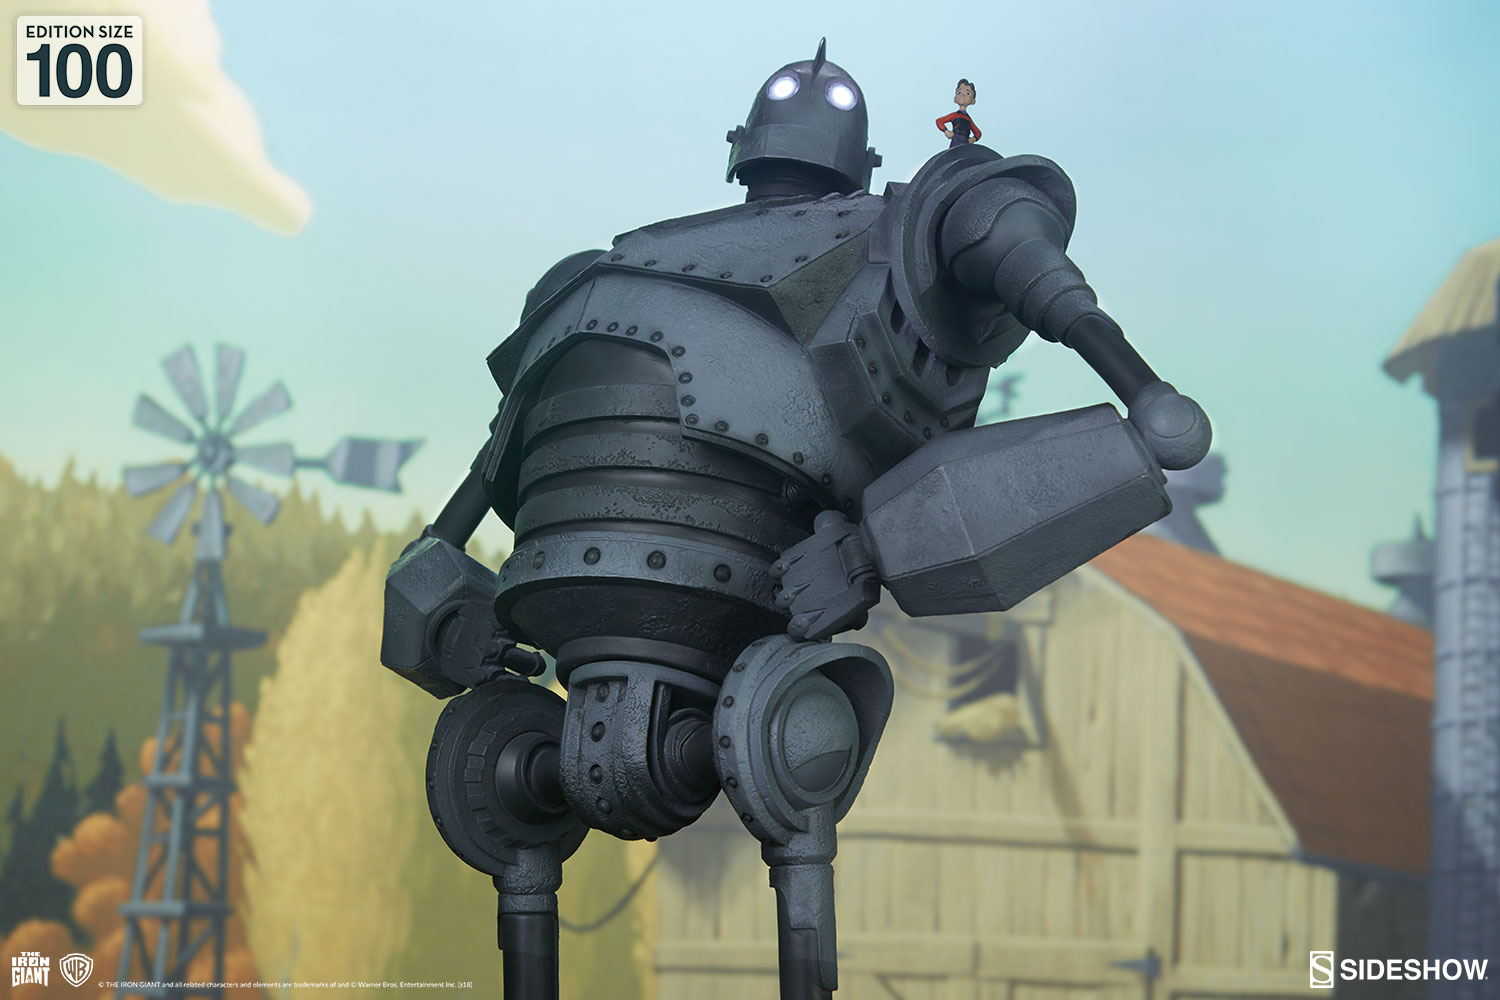 the-iron-giant-cel-shaded-variant_the-ir